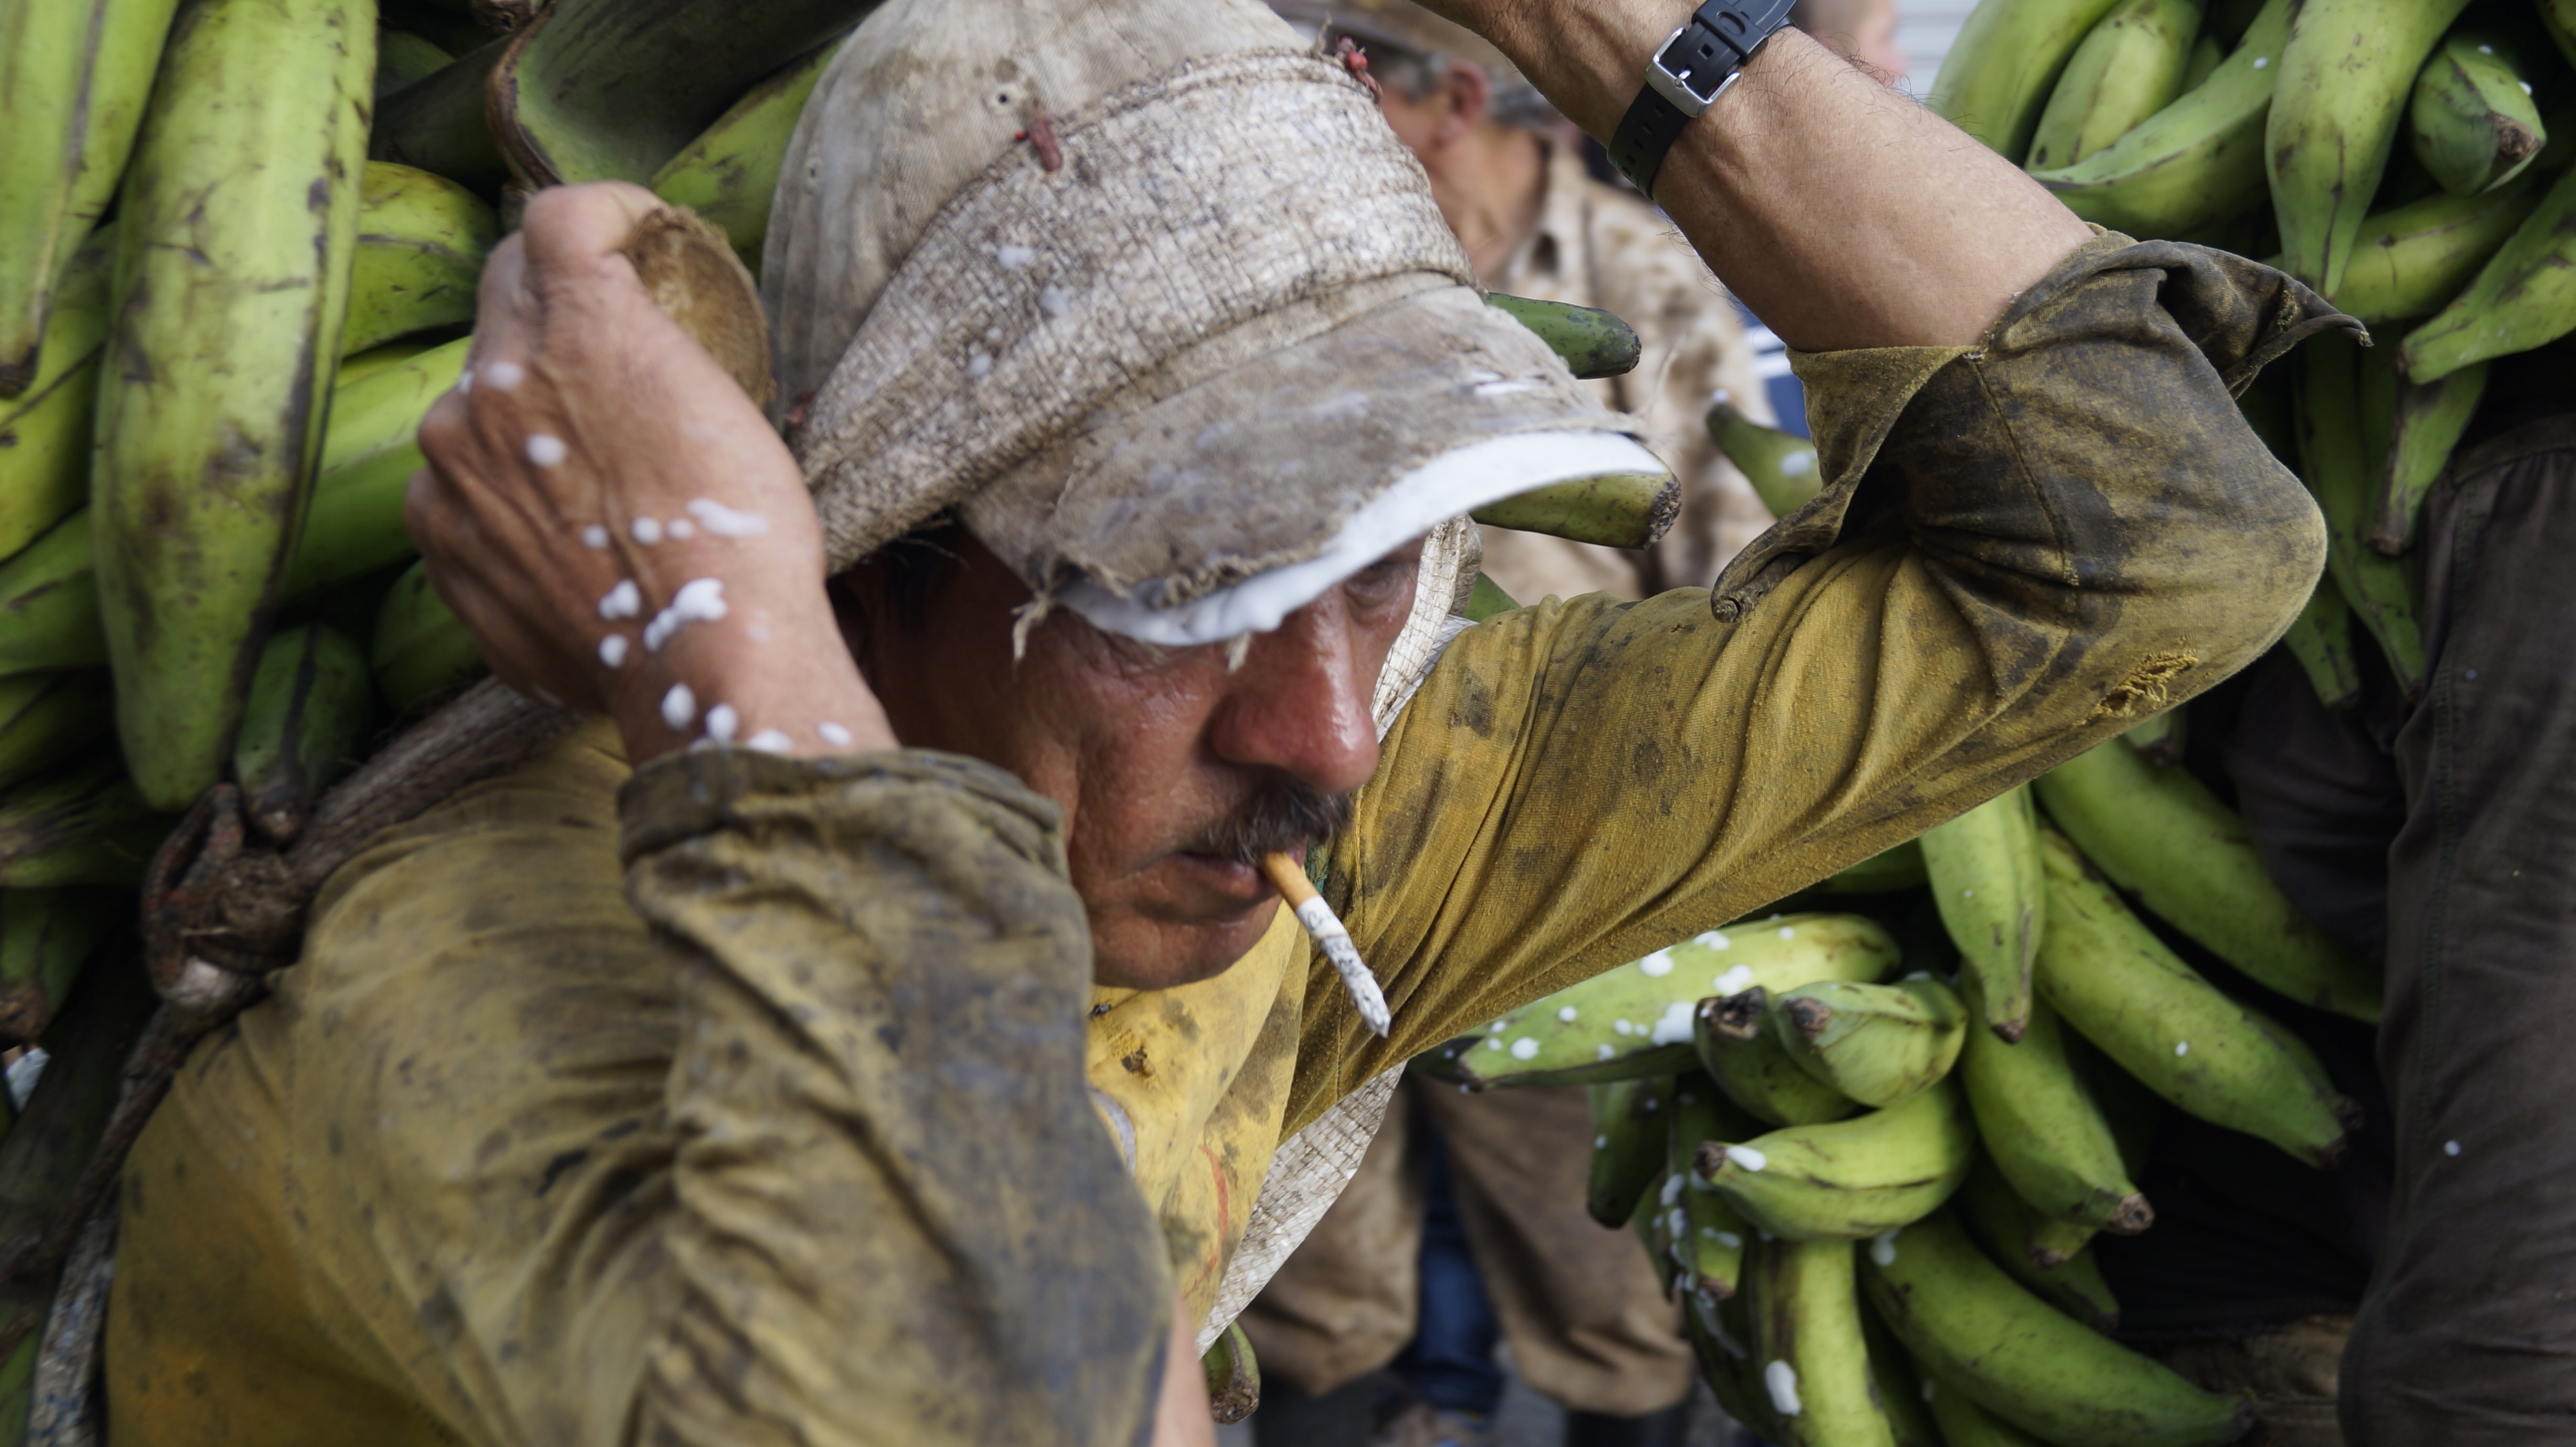 man with cigarette on mouth carrying bananas on his back